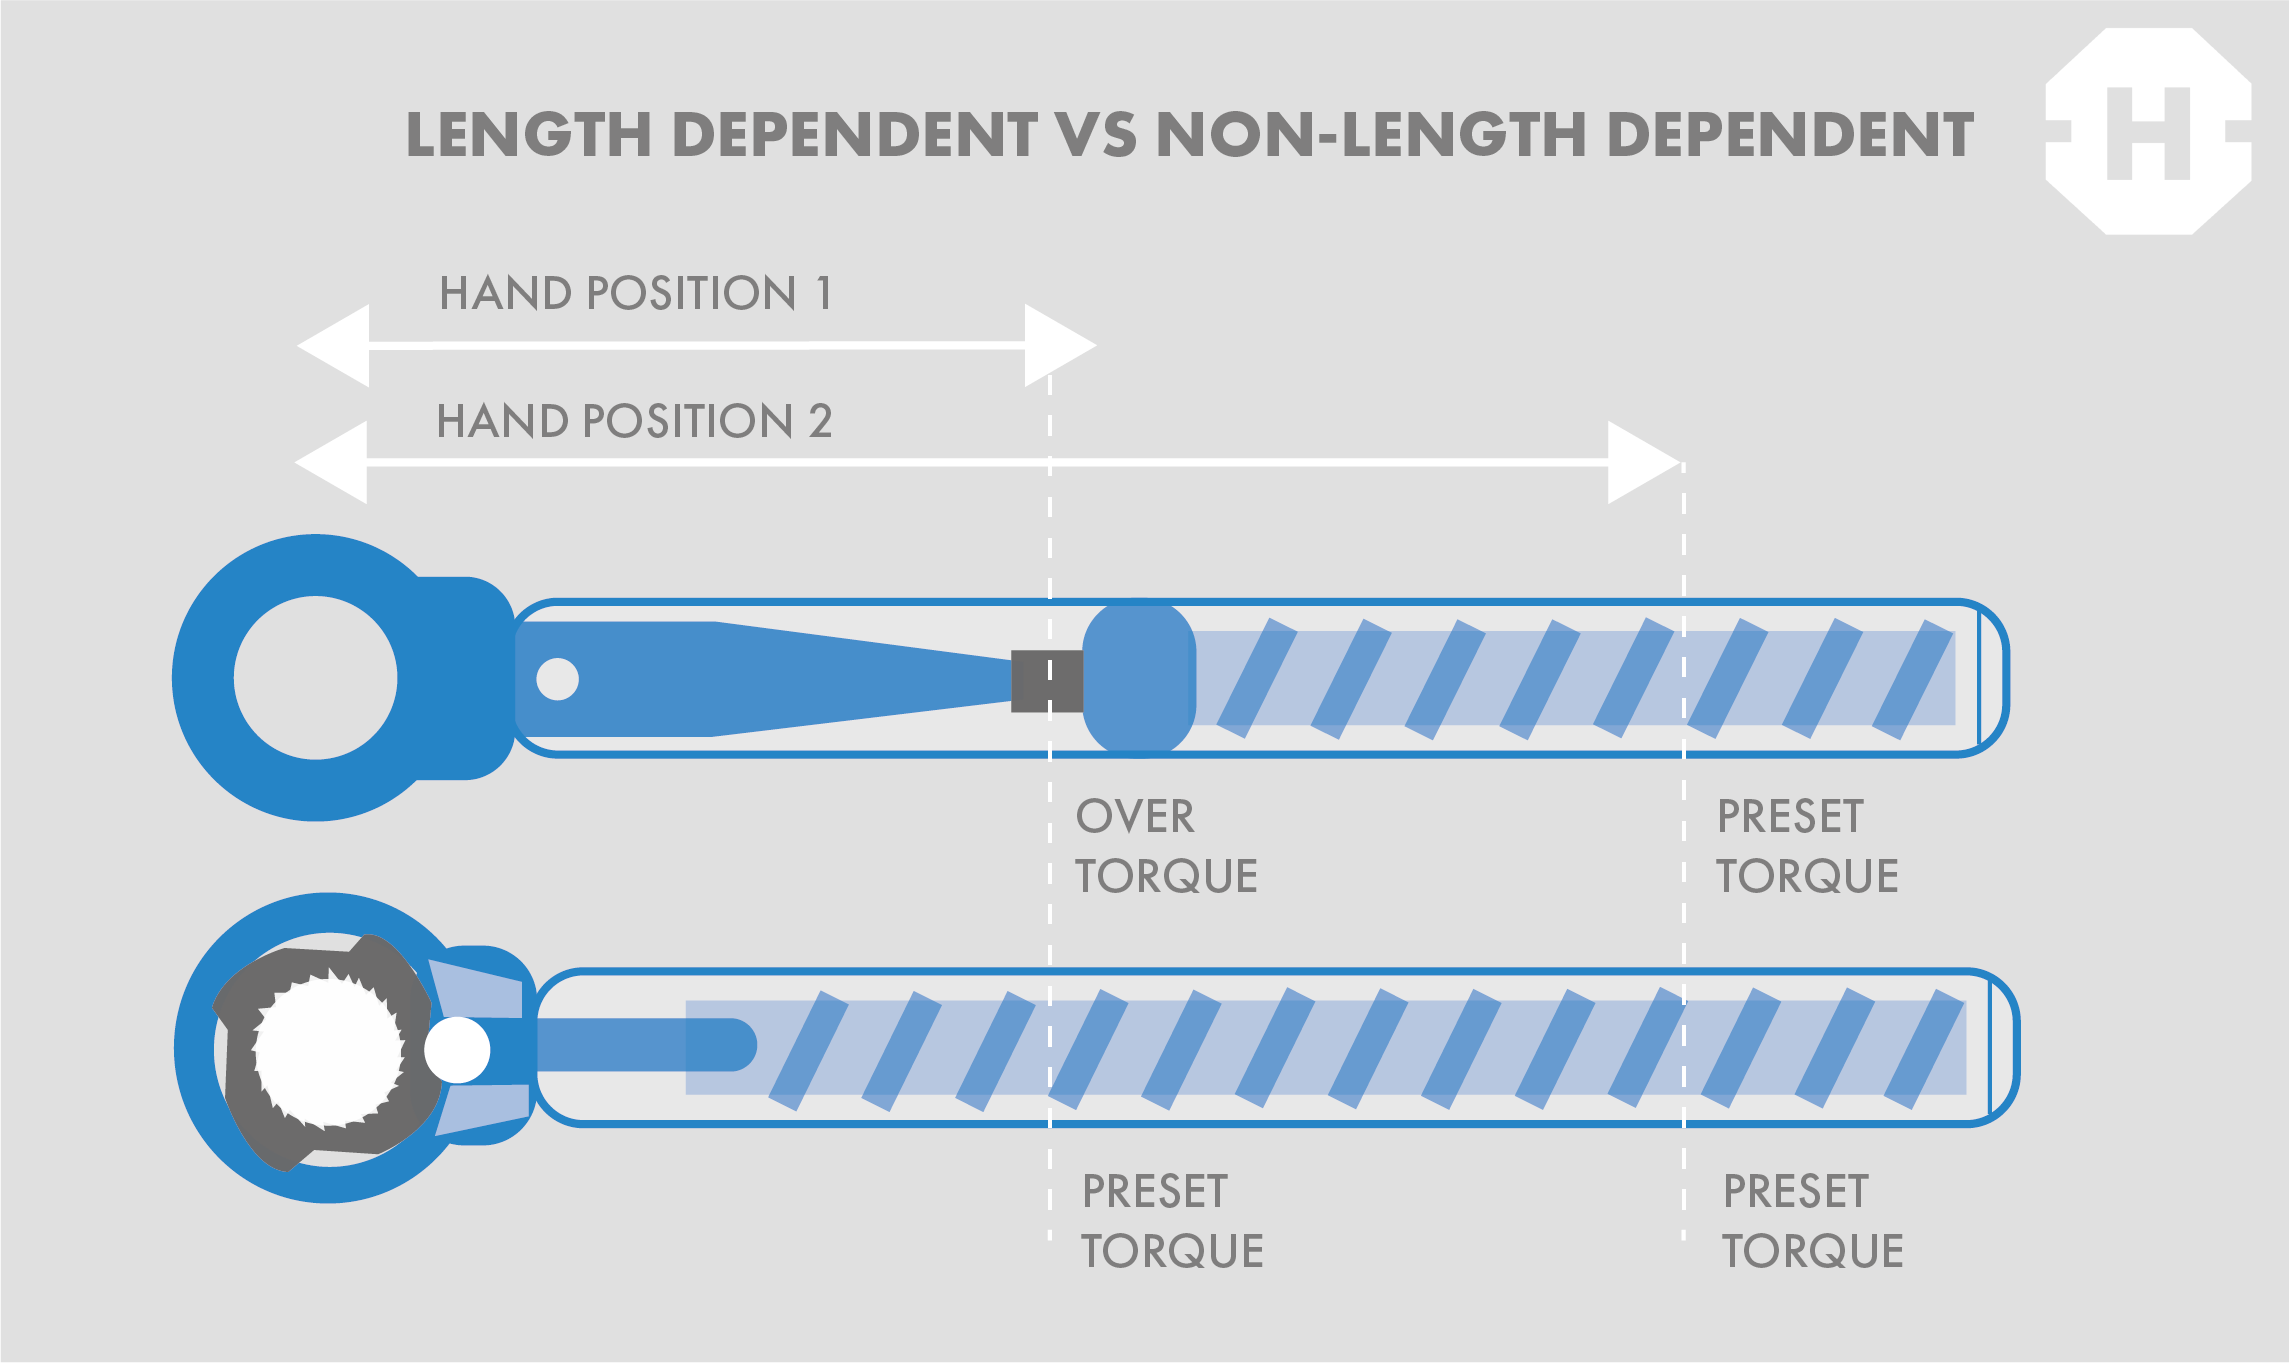 length dependent vs non-length dependent